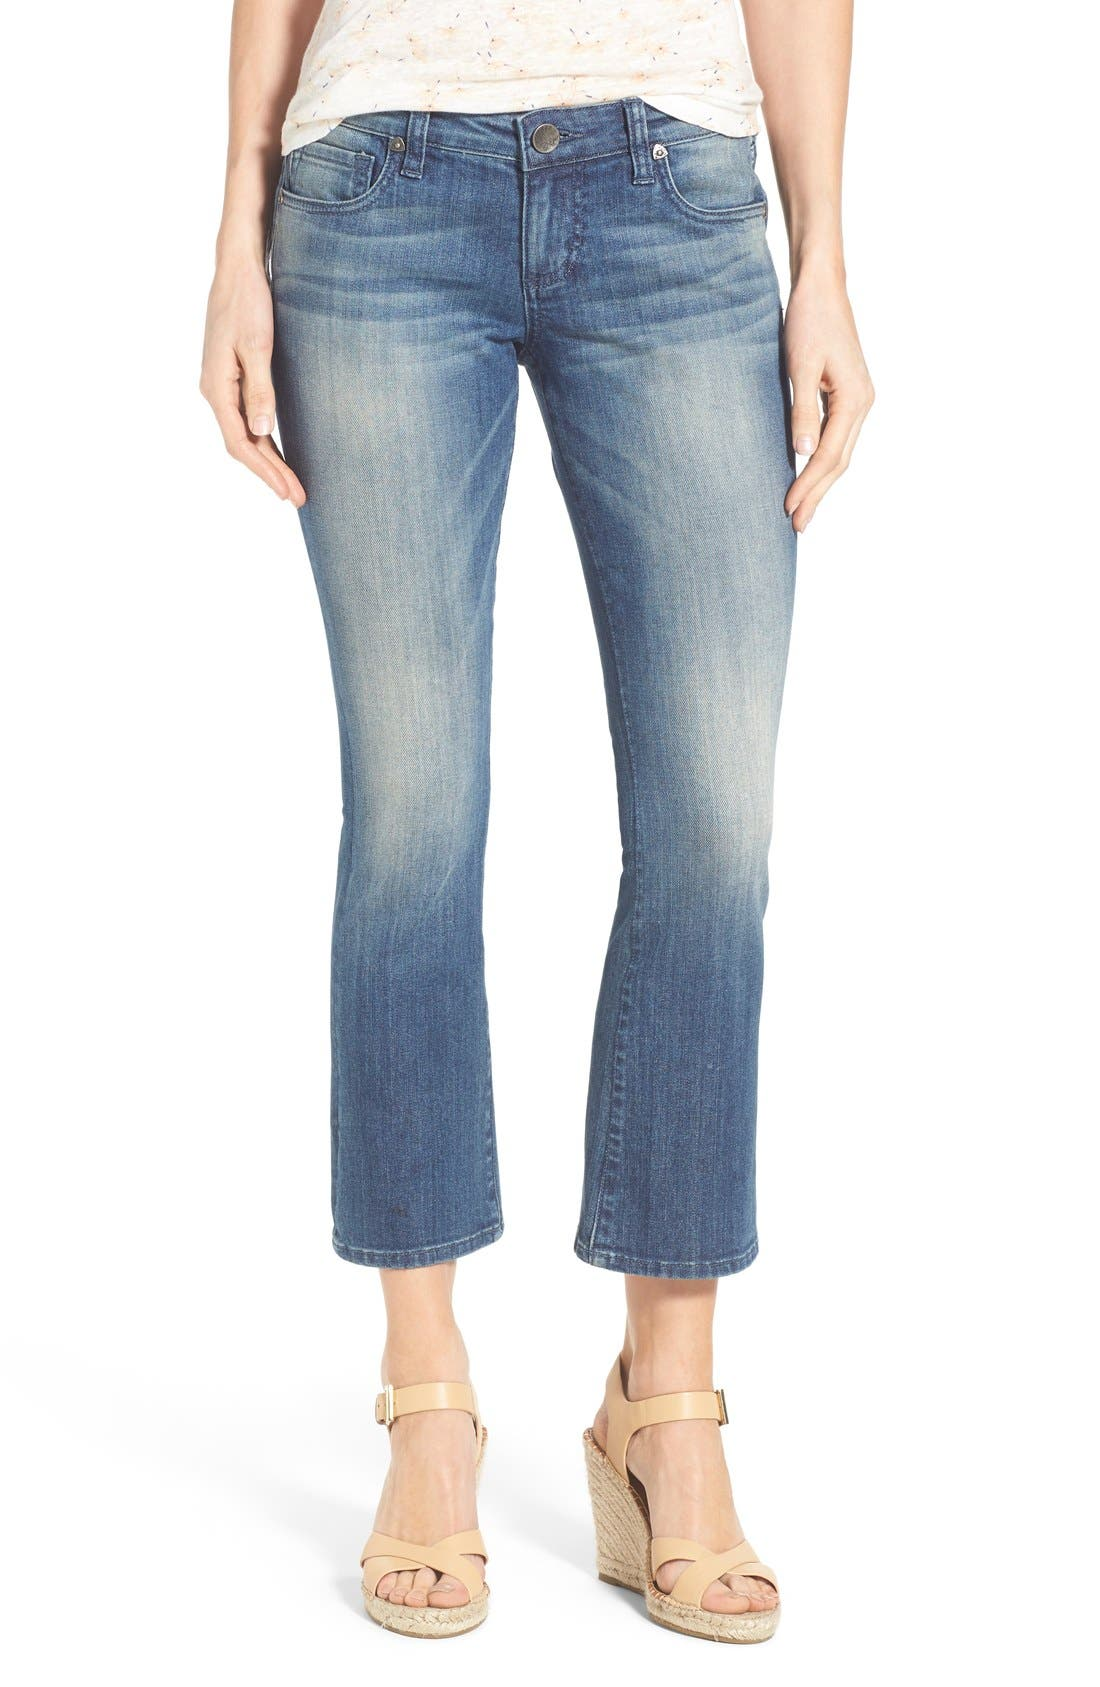 Alternate Image 1 Selected - KUT from the Kloth 'Reese' Crop Flare Leg Jeans (Primo)